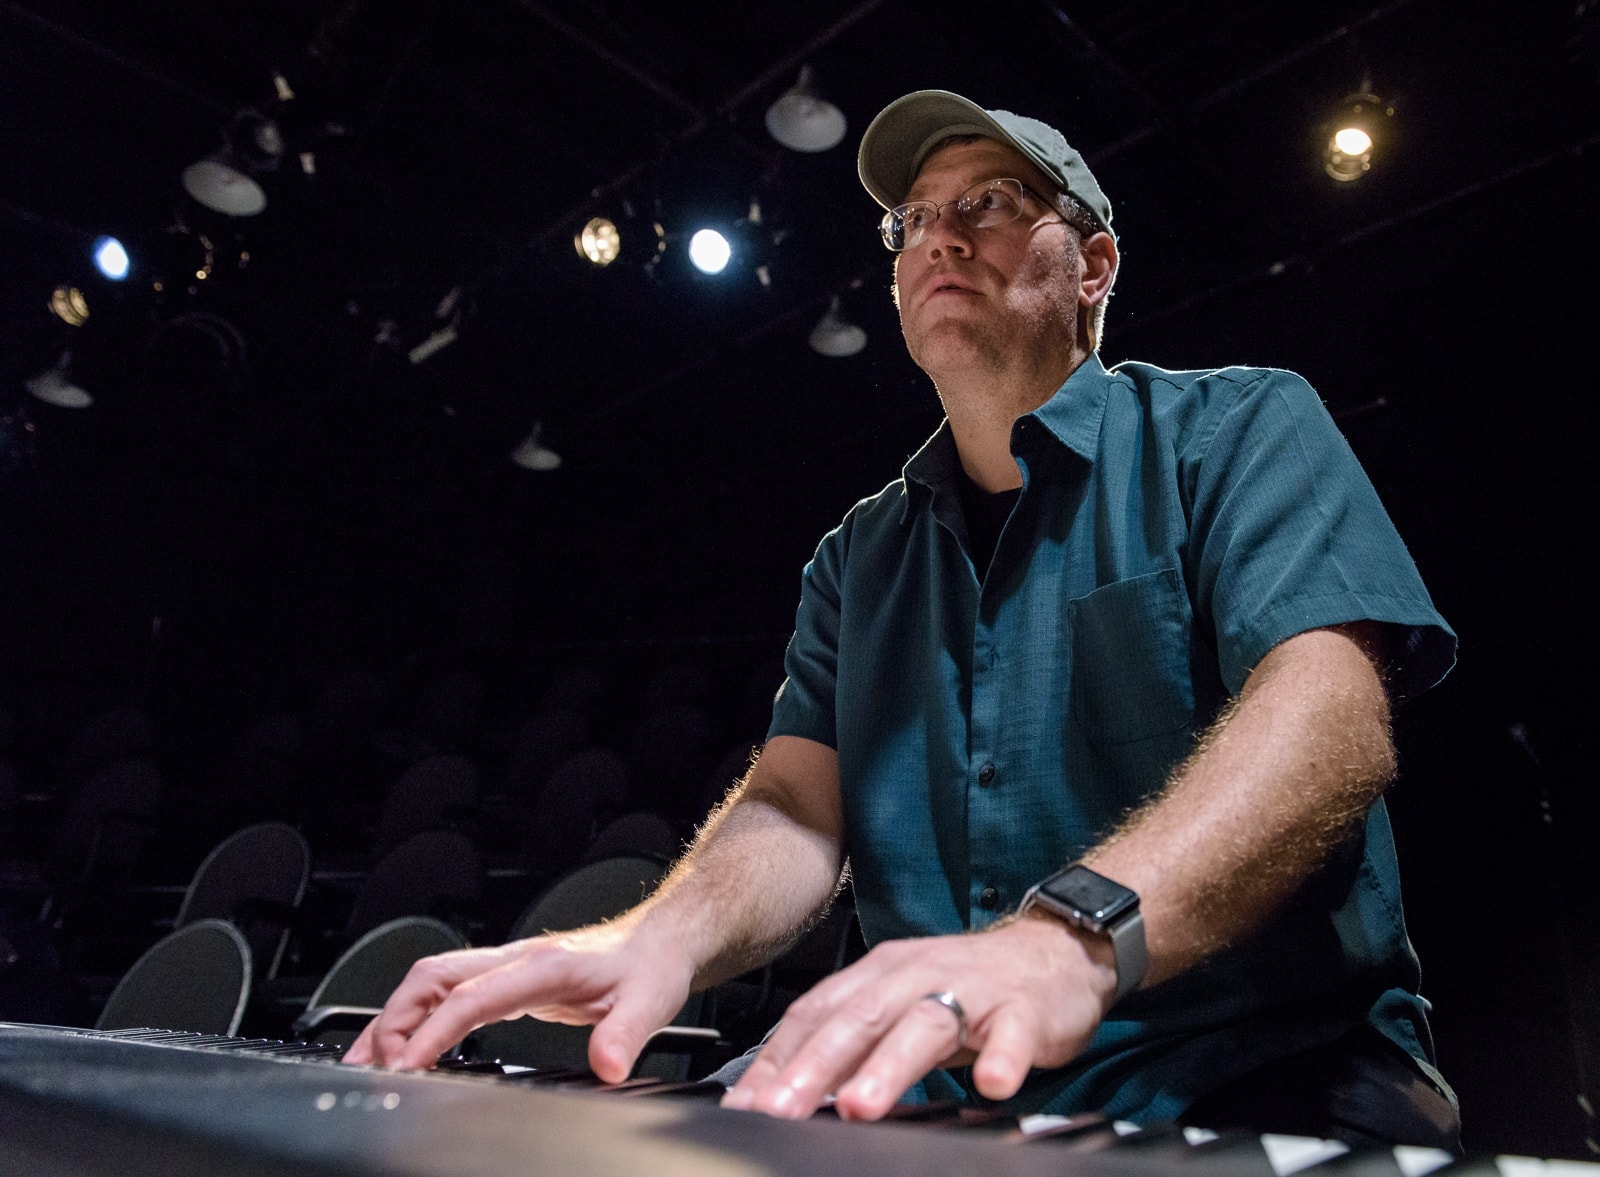 Travis Charles Ploeger on piano. Photo by Jeff Salmore.